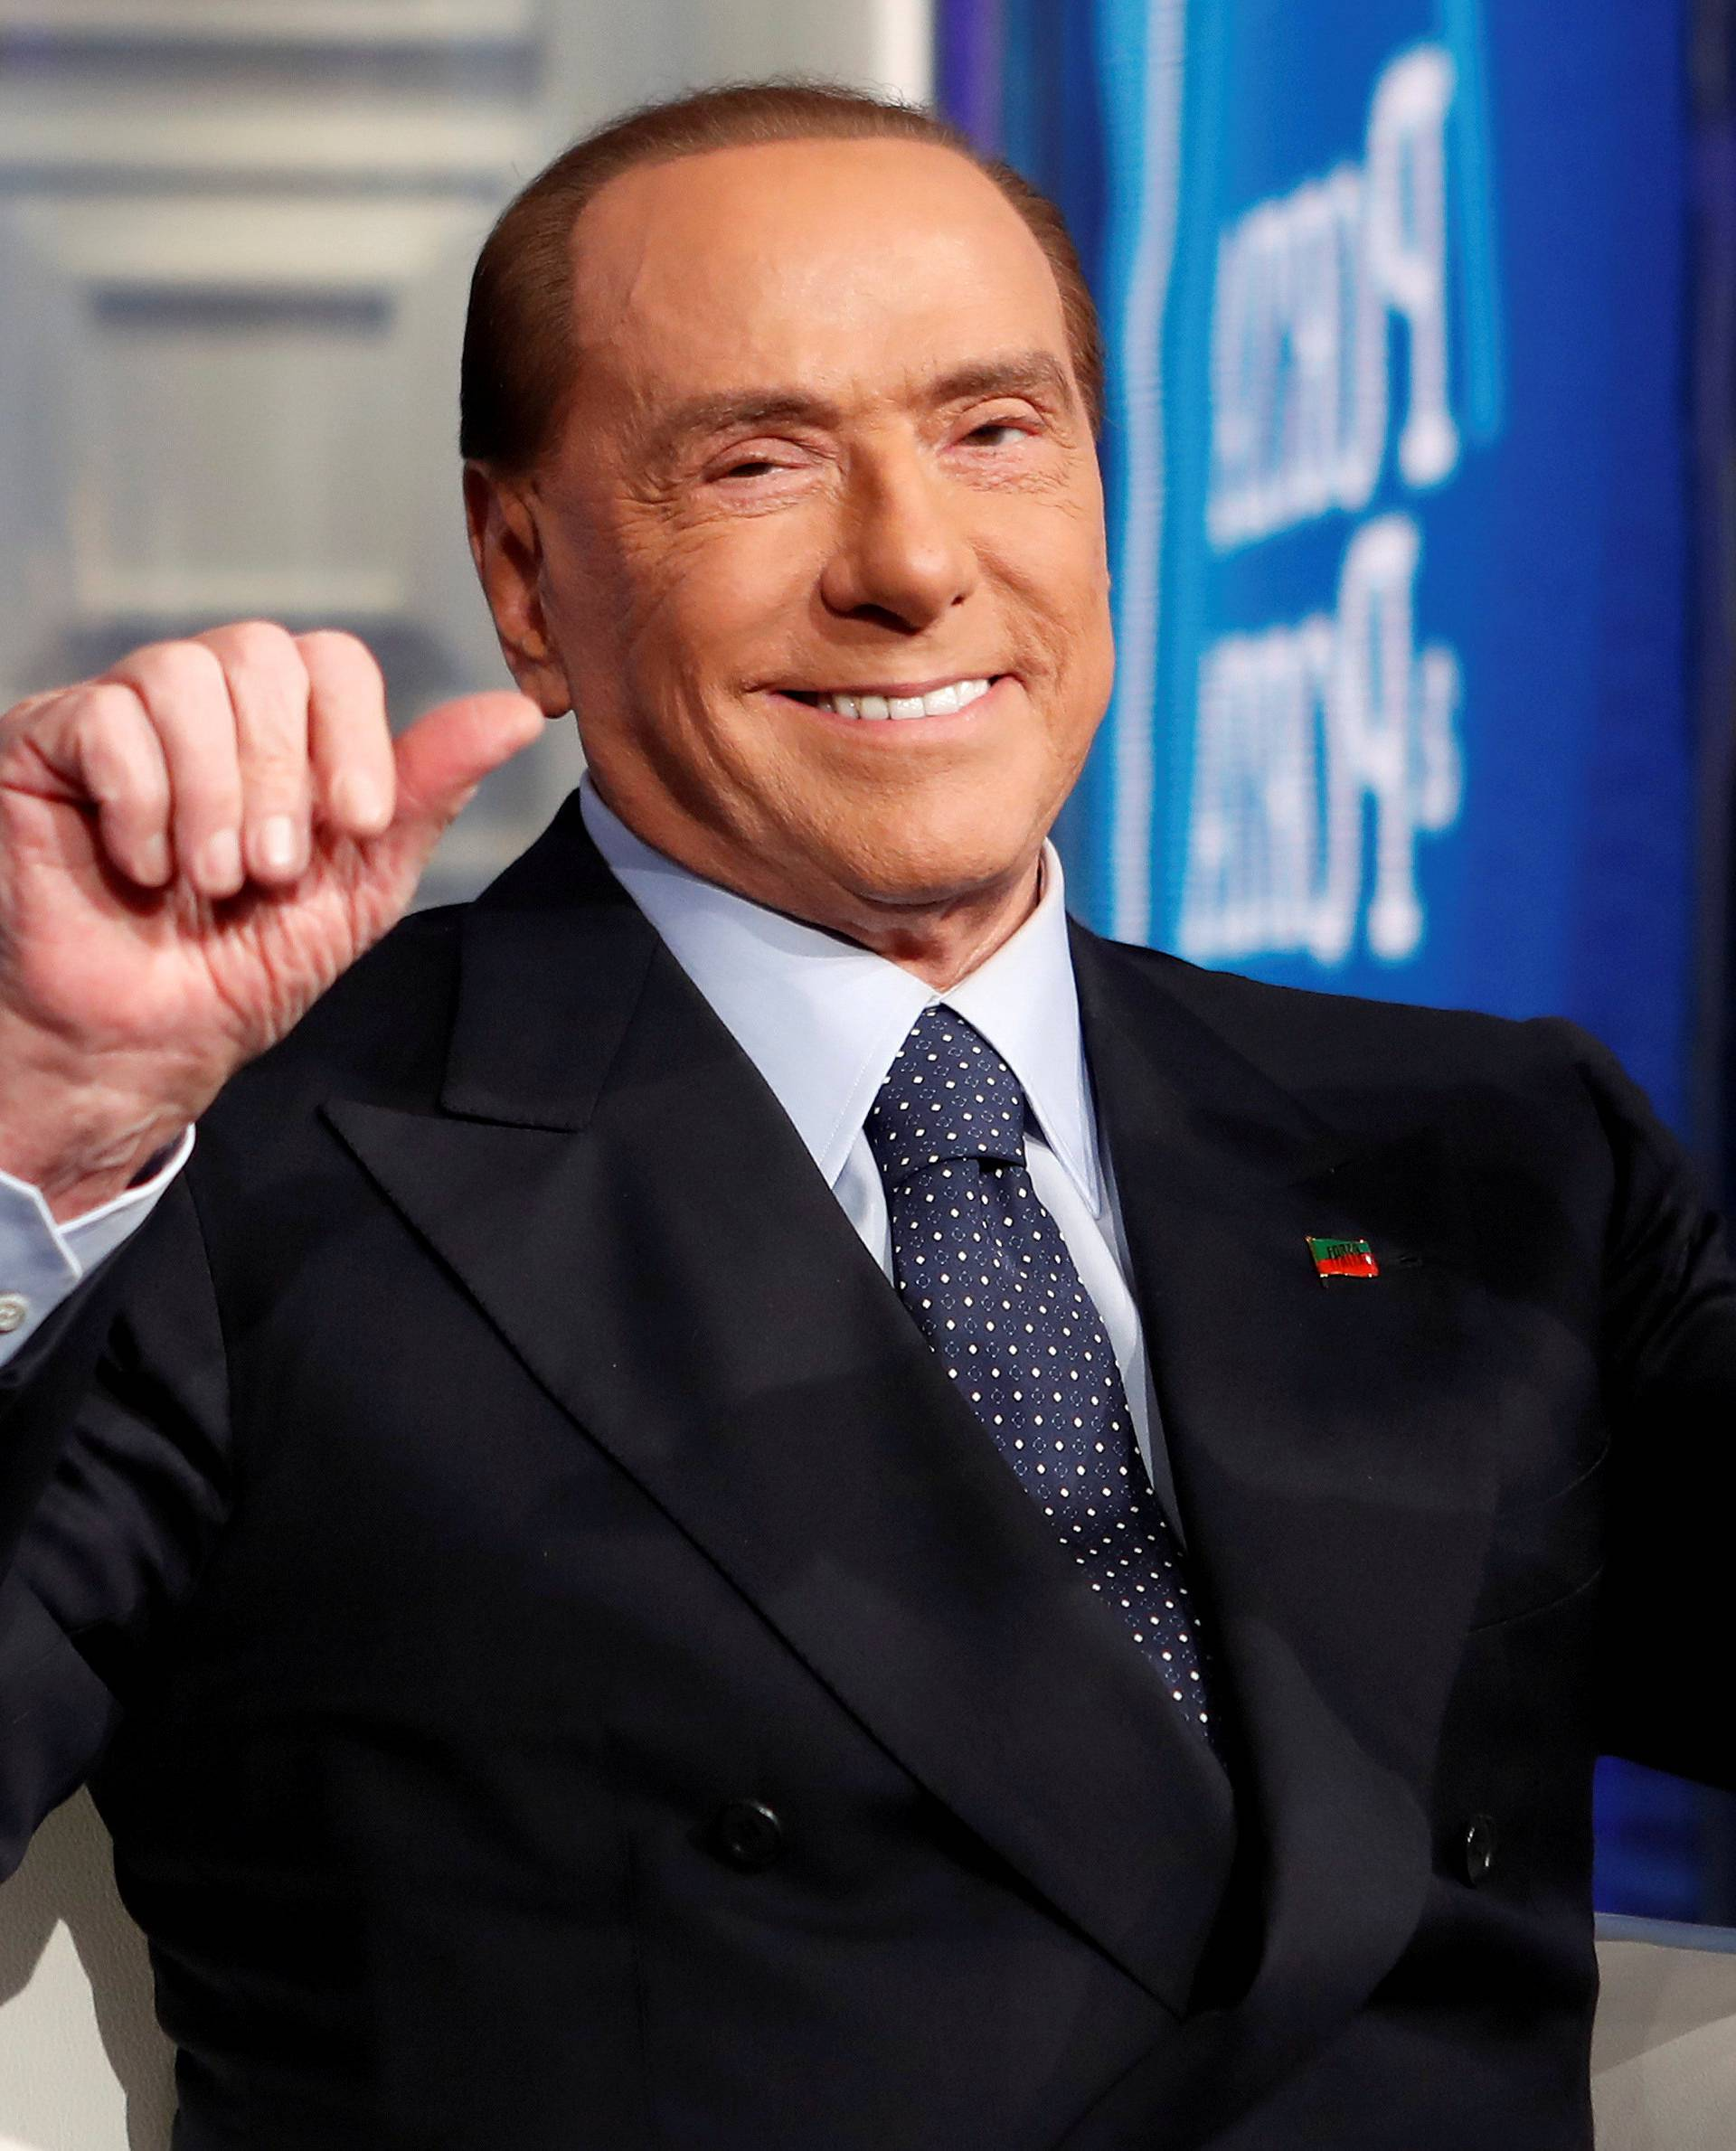 """FILE PHOTO: Italy's former Prime Minister Silvio Berlusconi gestures during the taping of the television talk show """"Porta a Porta"""" (Door to Door) in Rome"""